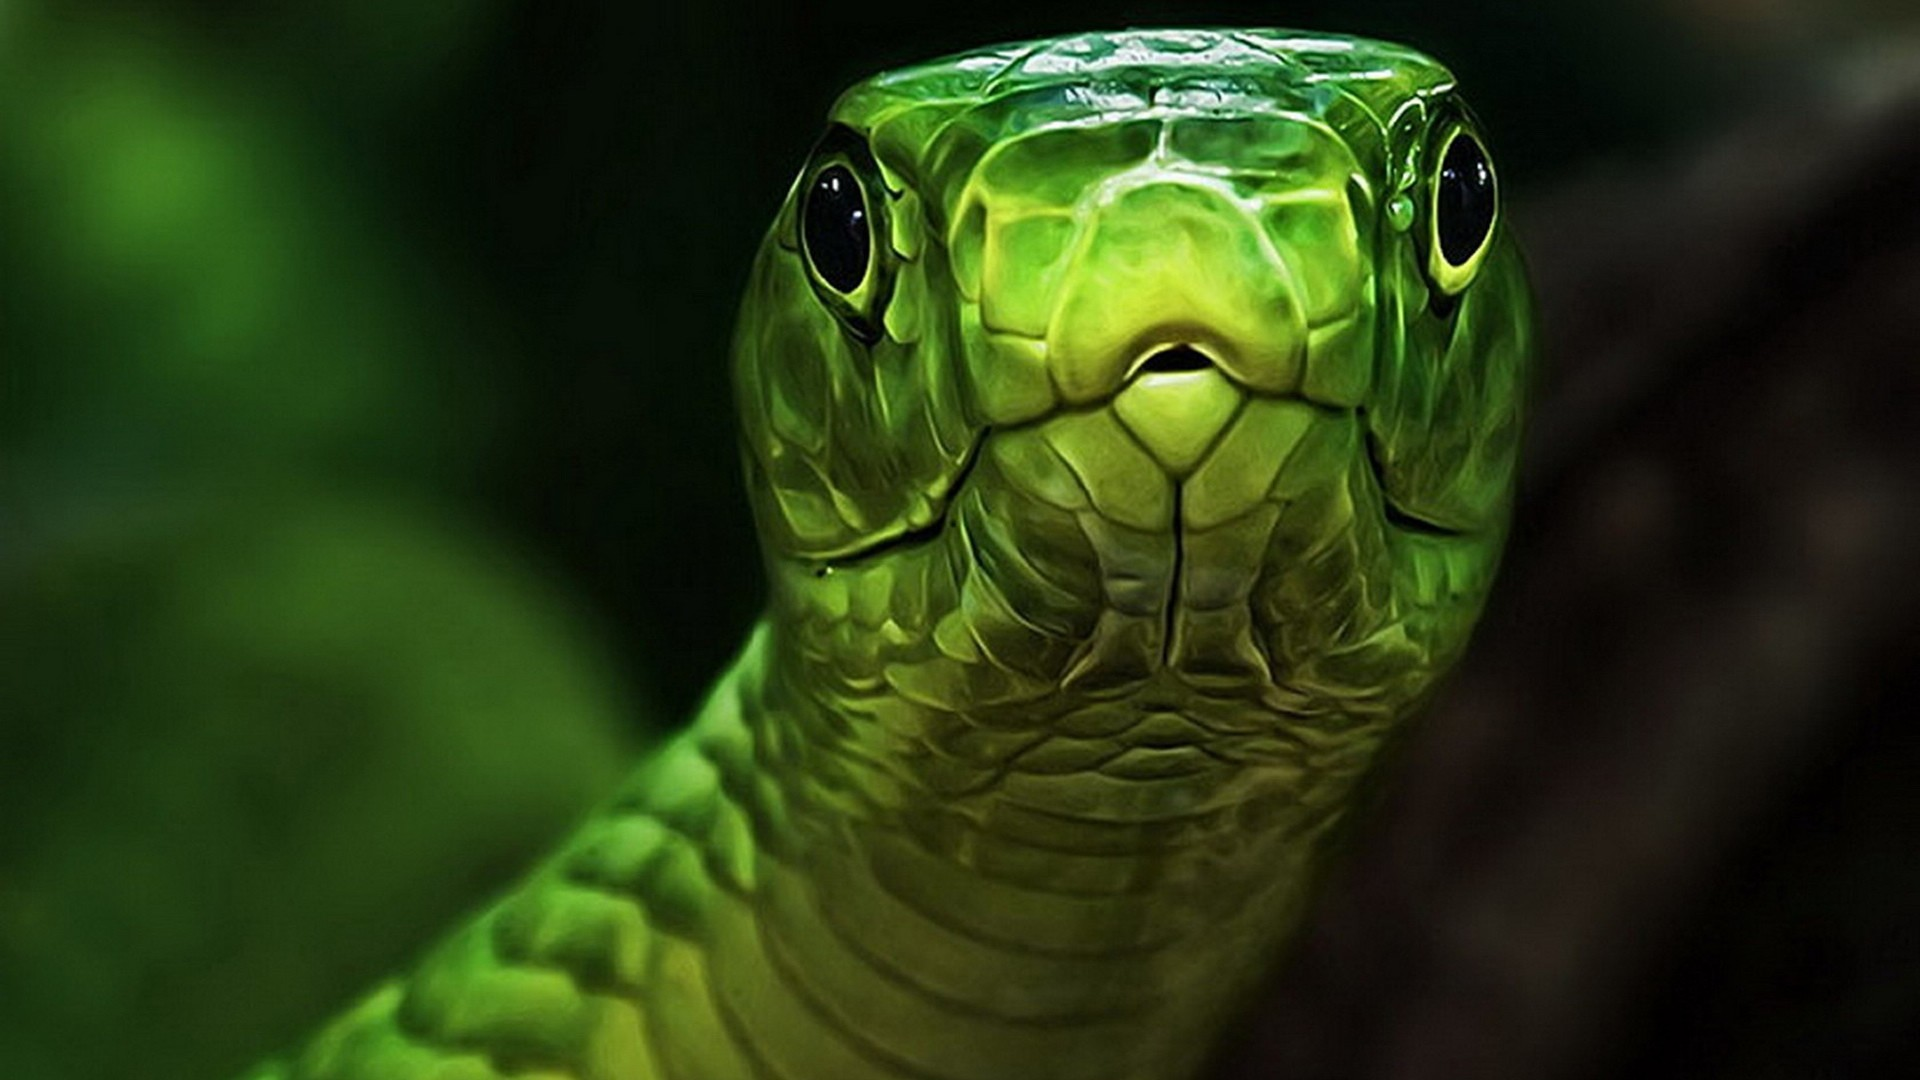 Snake Full HD Wallpaper